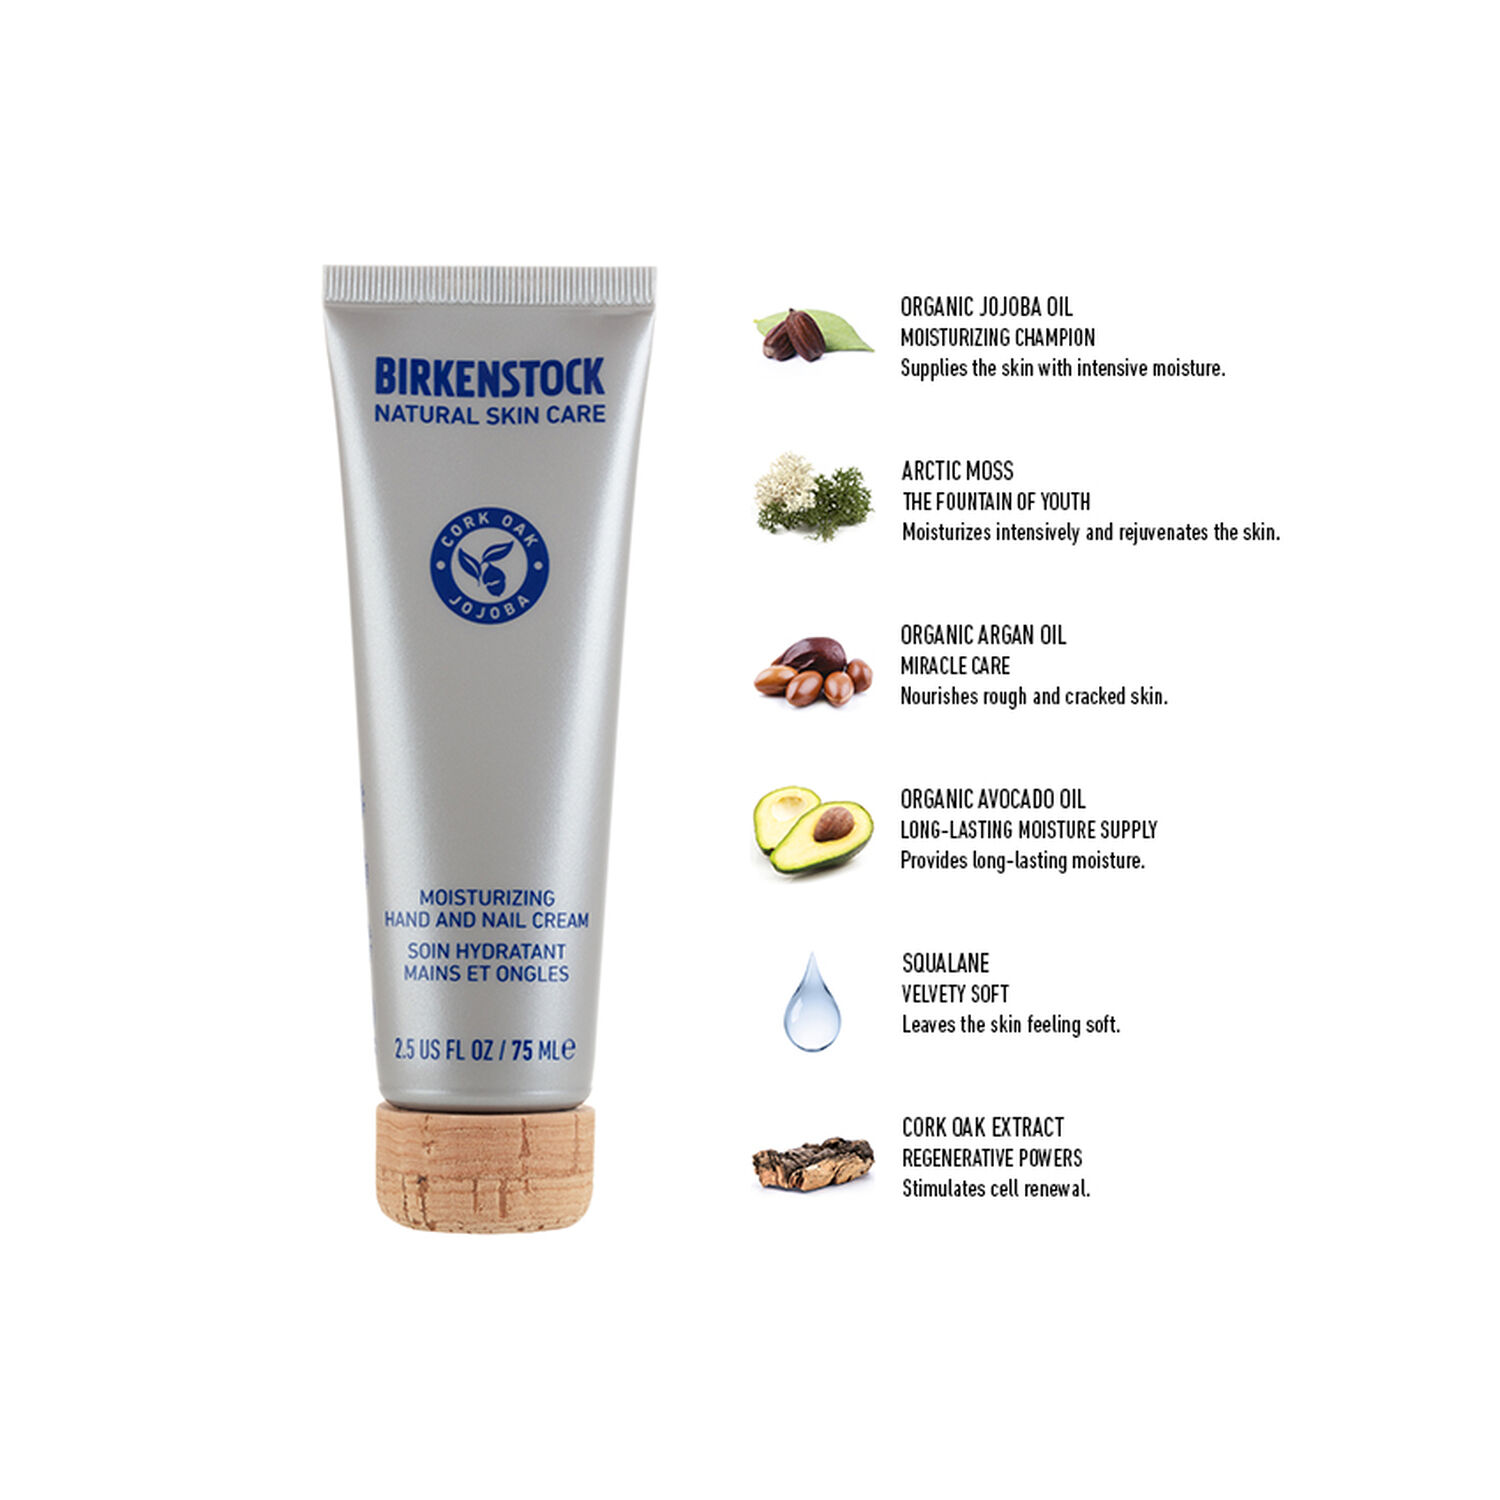 Moisturizing Hand and Nail Cream